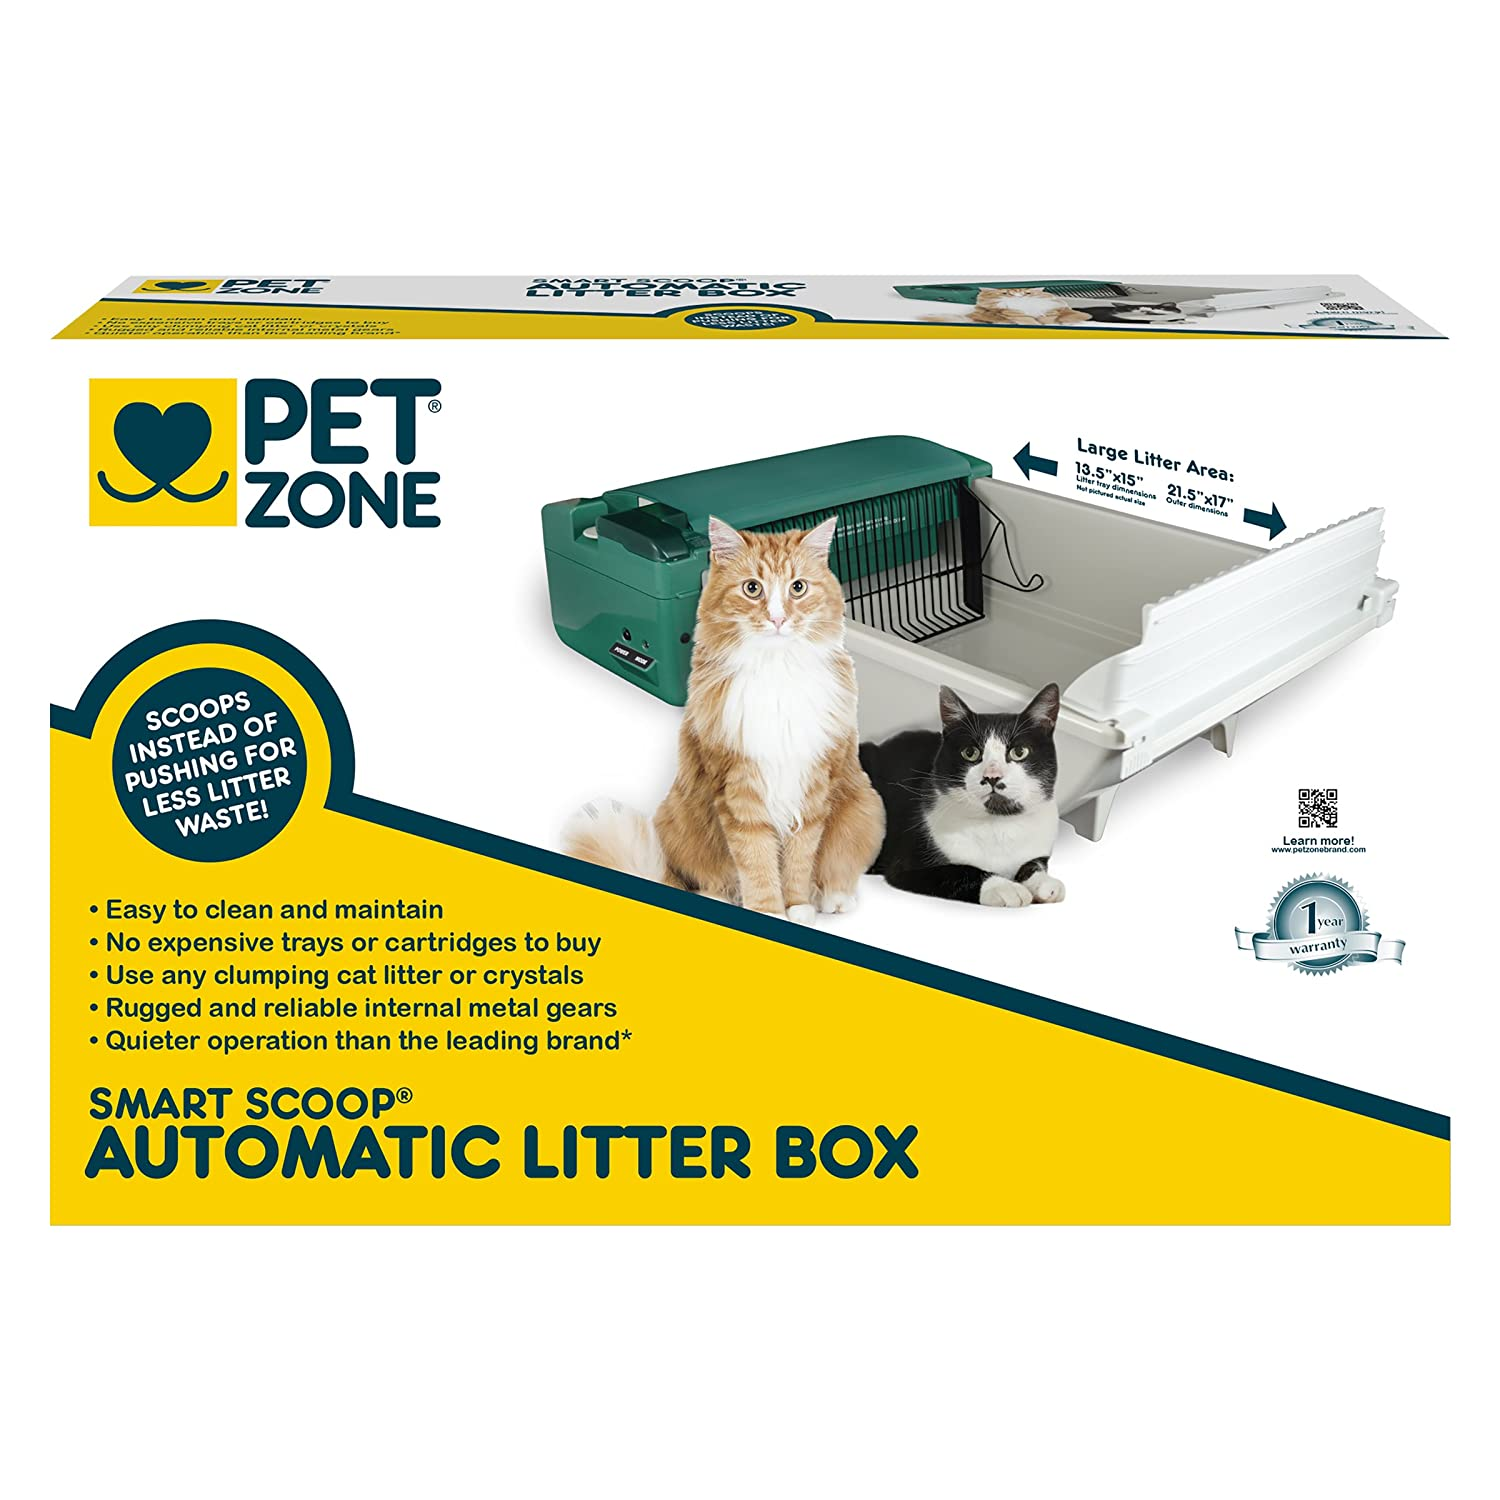 amazoncom pet zone smart scoop automatic litter box with bags and filters self cleaning cat box pet supplies